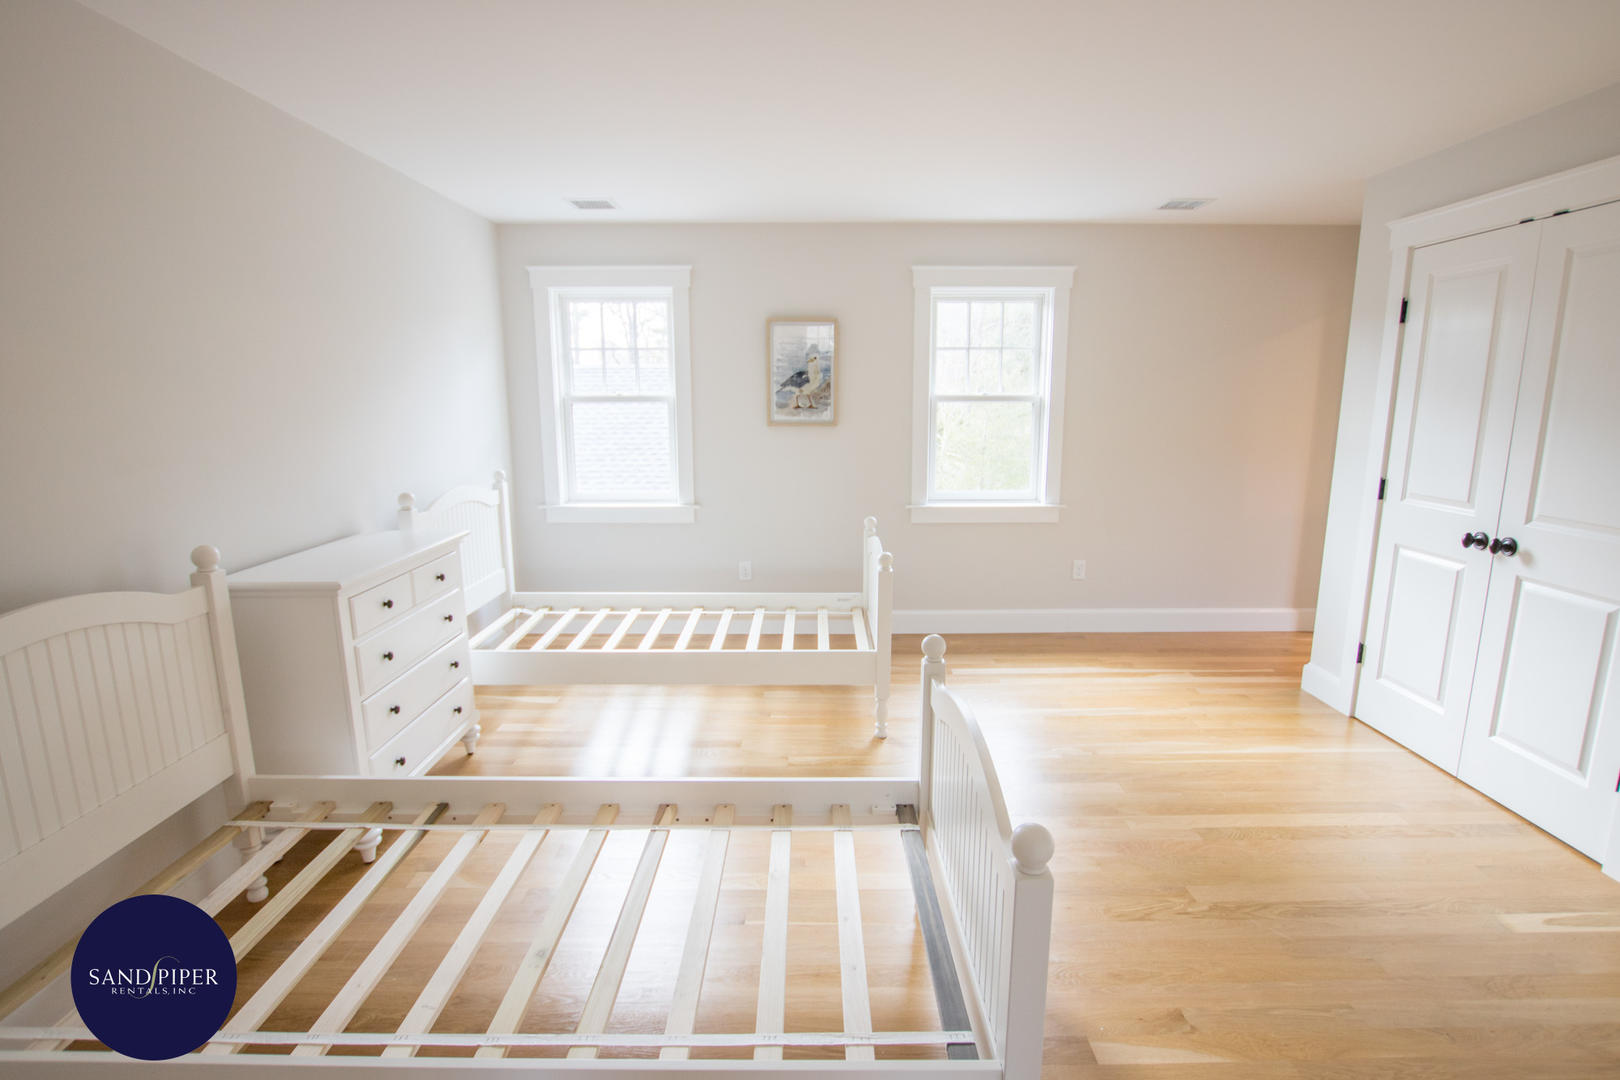 FURNISHINGS TO ARRIVE: BR3 Pair of Twin Beds, Ensuite Bath, Second Floor